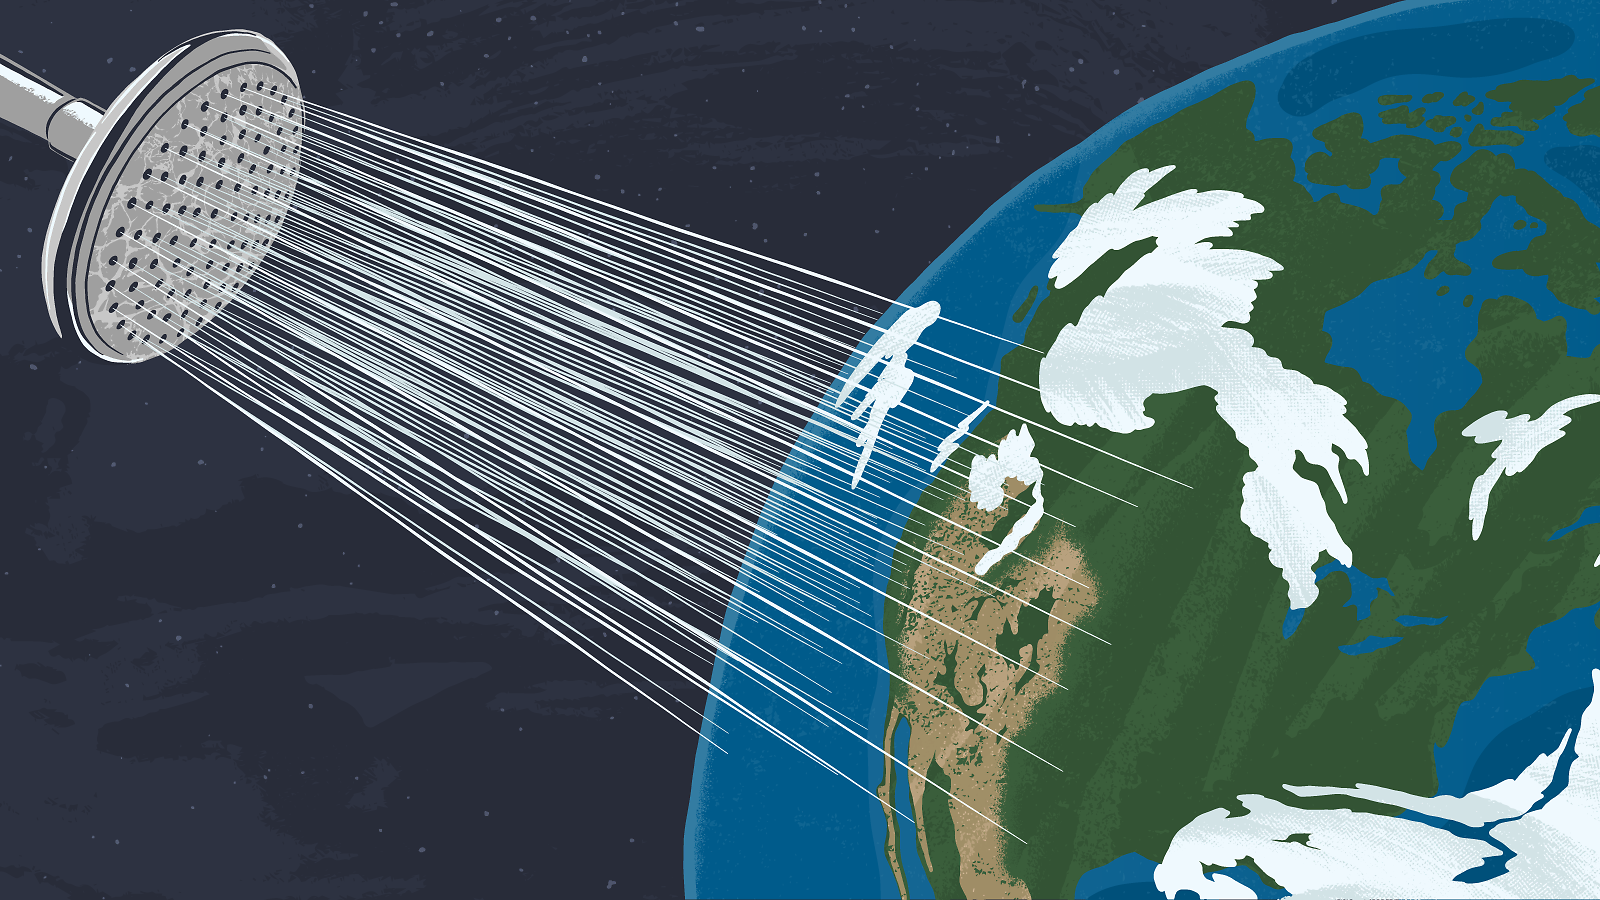 Illustration of the earth taking a shower